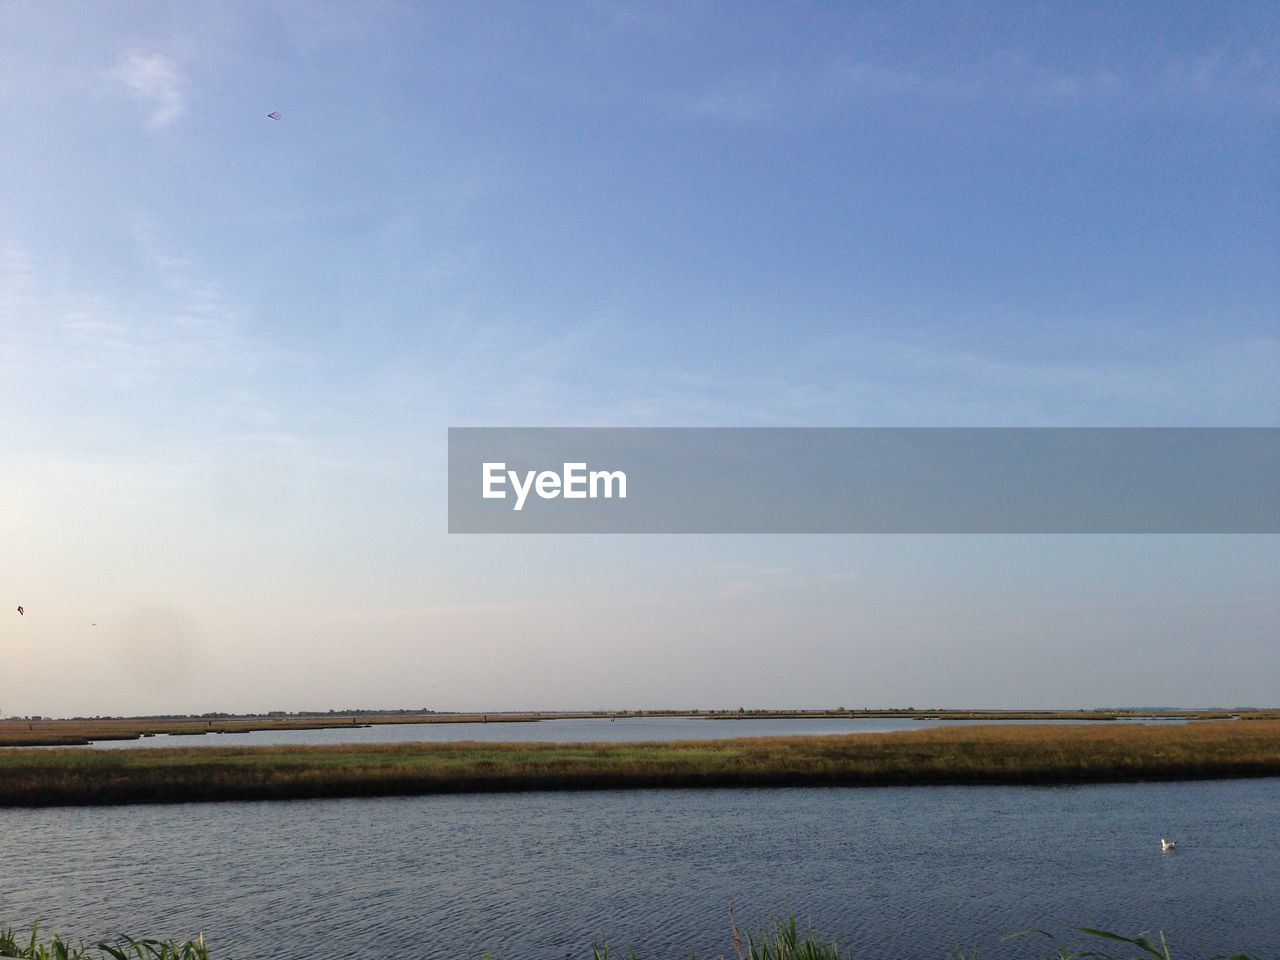 water, sky, beauty in nature, scenics - nature, tranquility, tranquil scene, sea, nature, non-urban scene, horizon, waterfront, day, cloud - sky, no people, idyllic, land, outdoors, remote, horizon over water